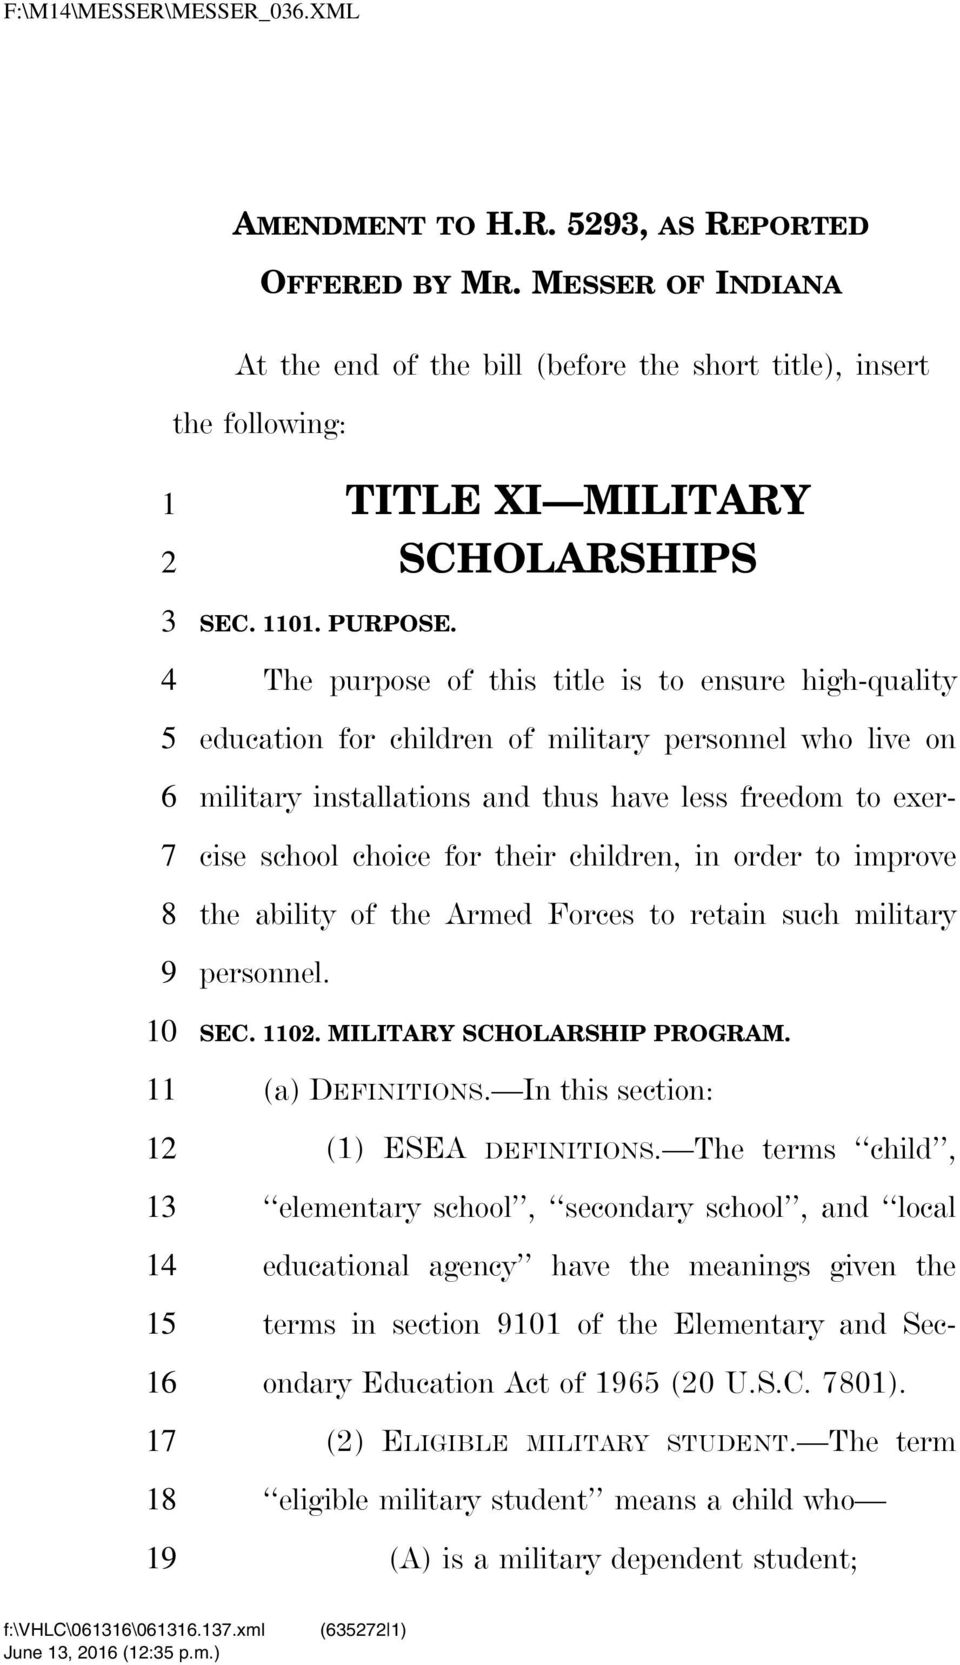 exercise school choice for their children, in order to improve the ability of the Armed Forces to retain such military personnel. SEC. 0. MILITARY SCHOLARSHIP PROGRAM. (a) DEFINITIONS.